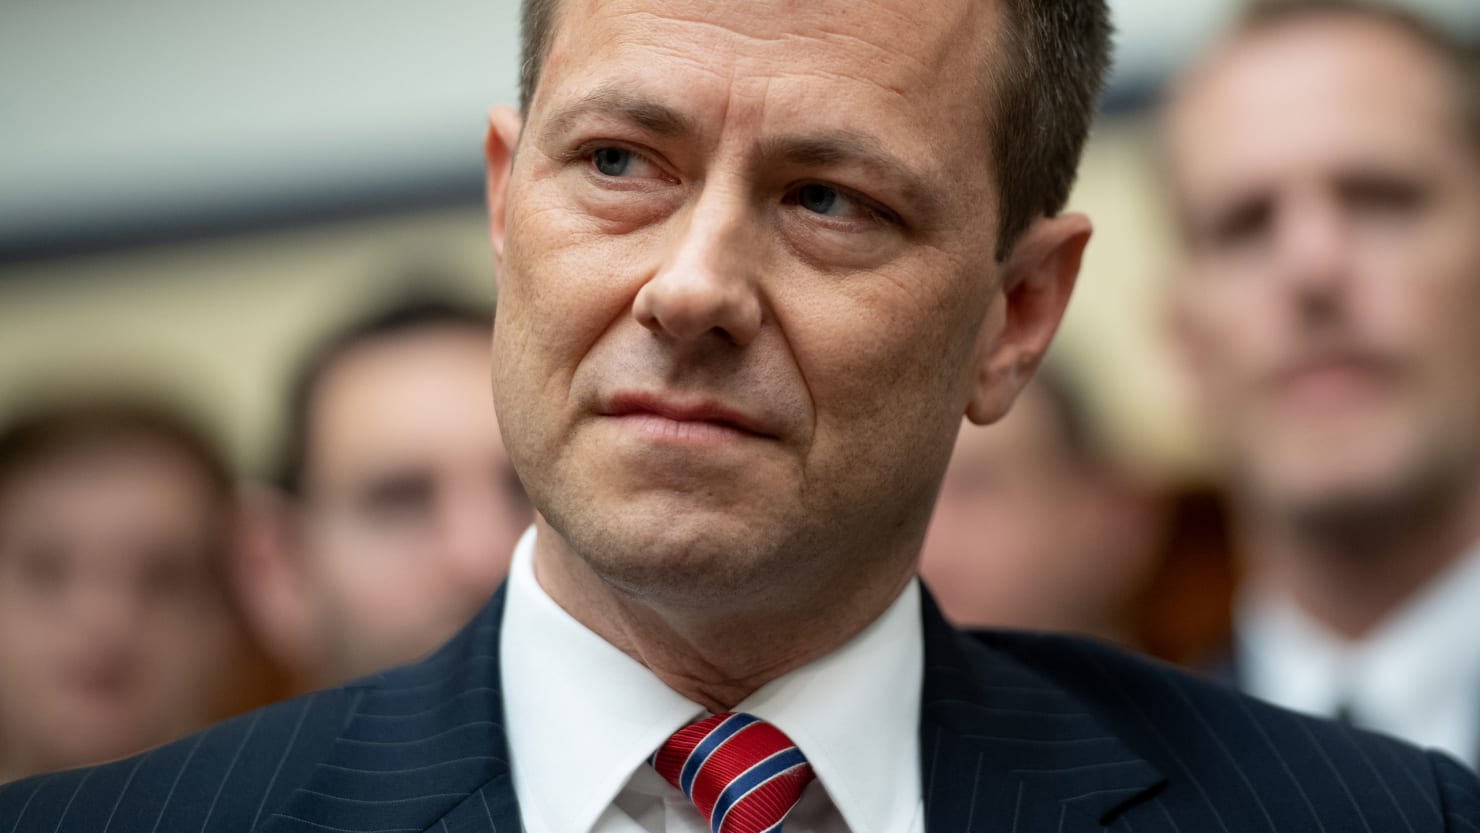 Republicans Thought Peter Strozk Would Be a Punching Bag. He Just Knocked Them Out.